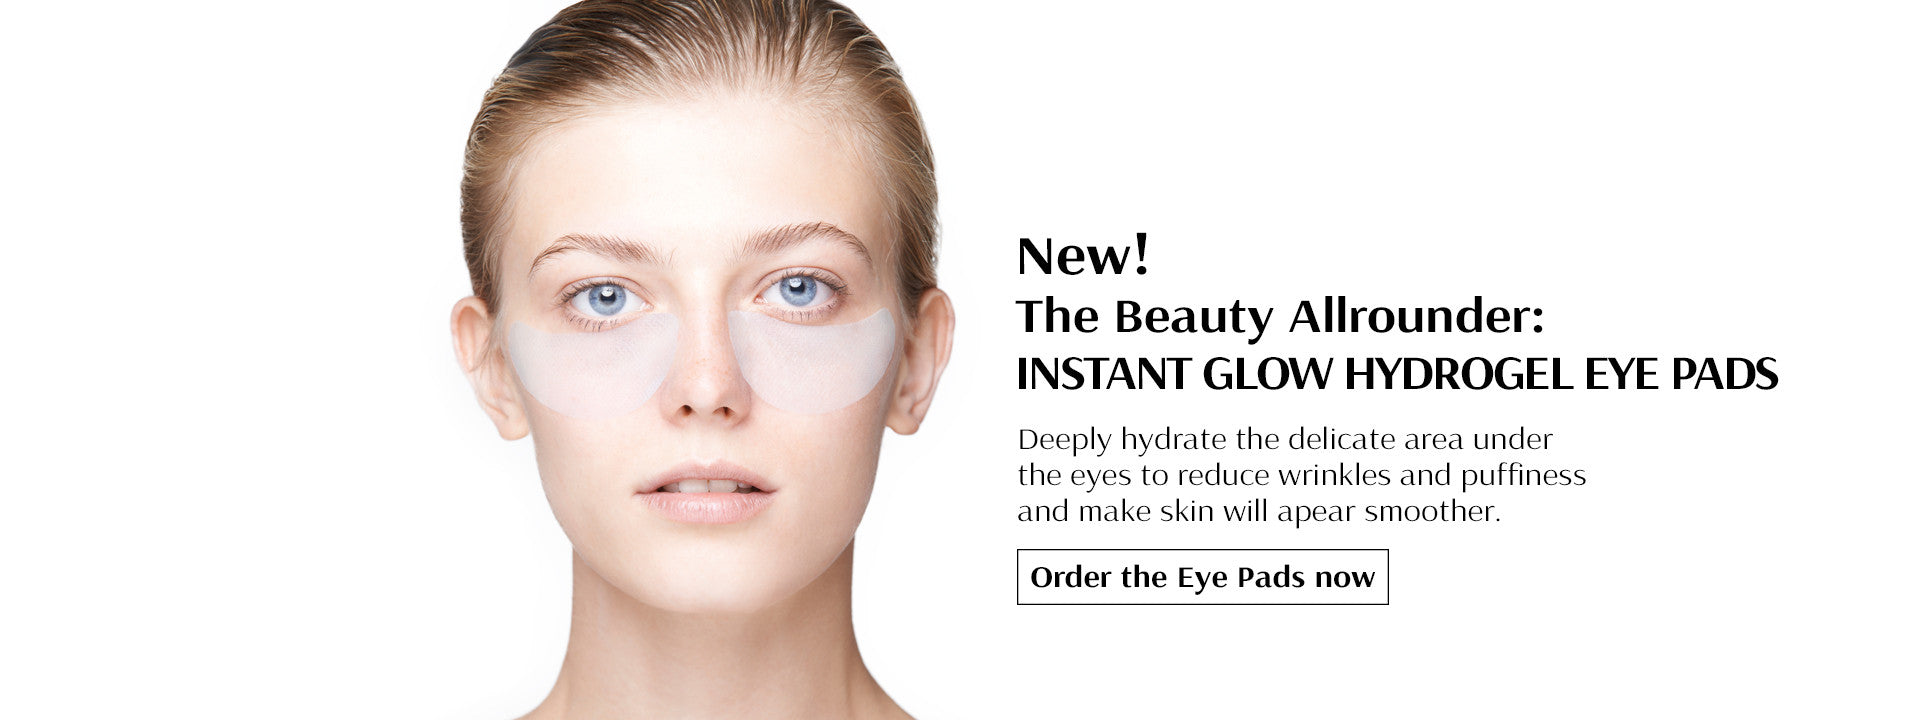 NSTANT GLOW HYDROGEL EYE PADS The hydrogel eye pads are a beauty allrounder! Wrinkles become smoother, dark circles get minimized, tear sacs and swellings are reduced